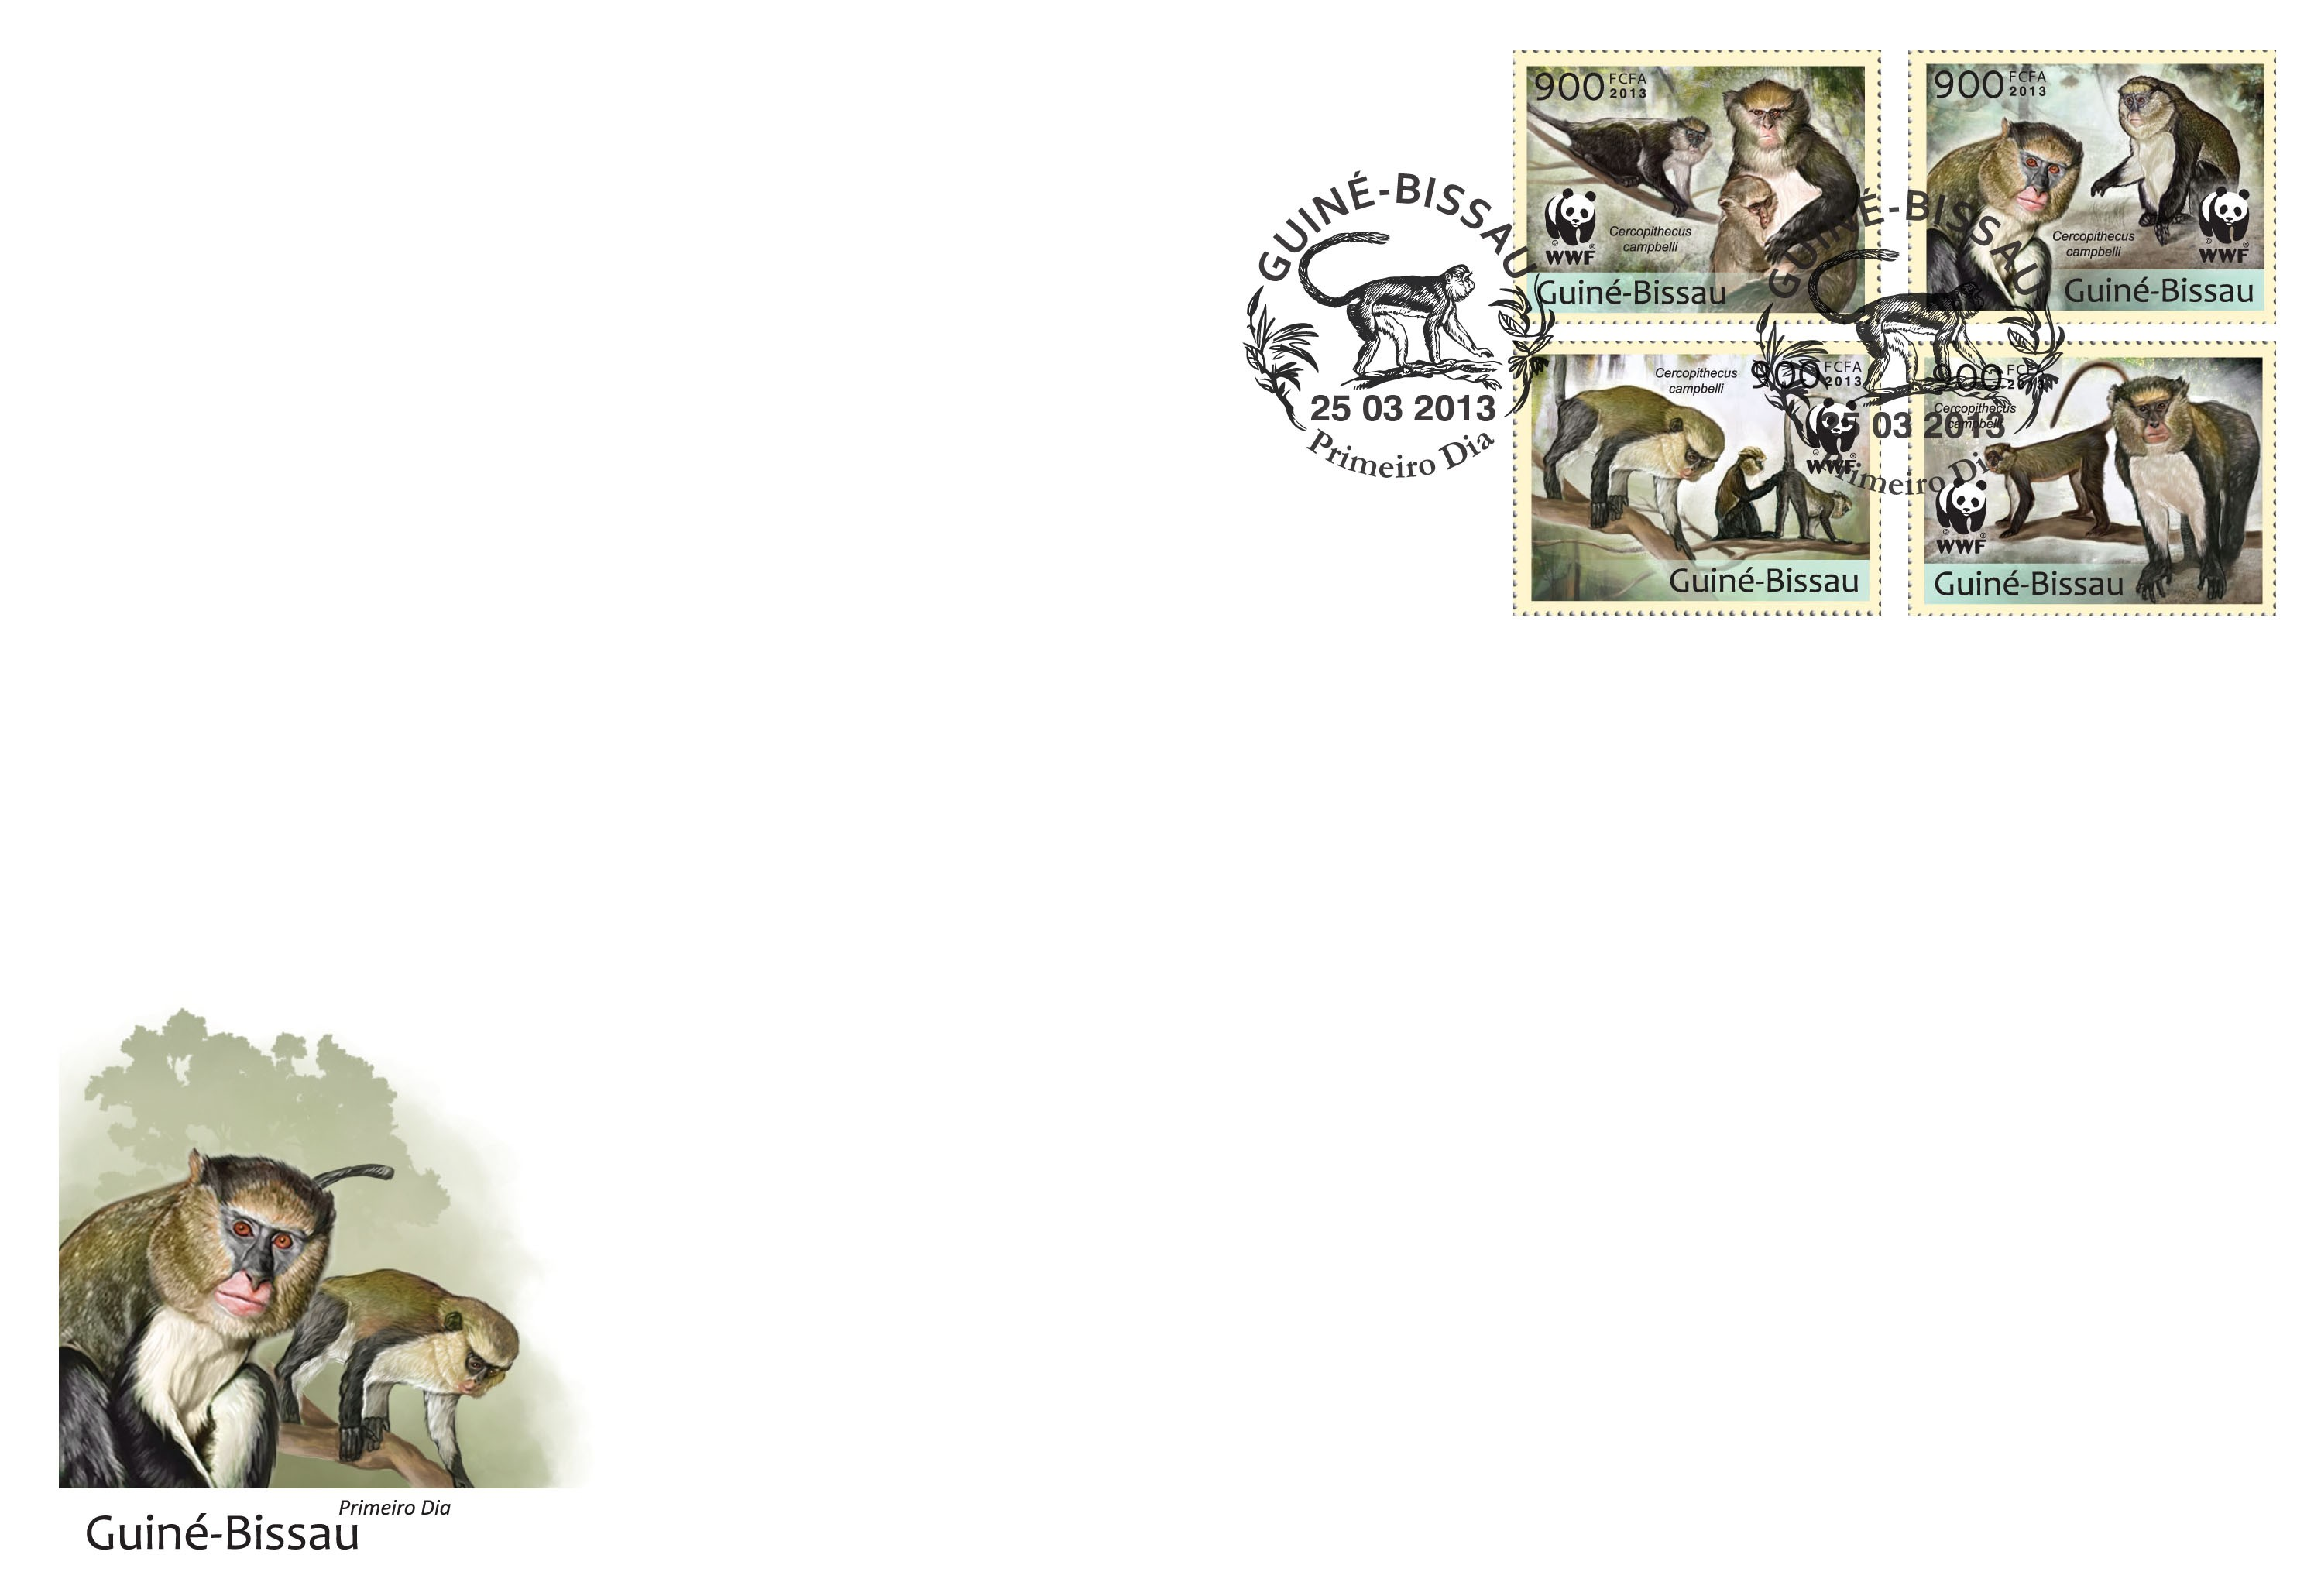 WWF - Monkeys (Cercopithecus campgelli) Set of 4 values - FDC - Issue of Guinée-Bissau postage stamps